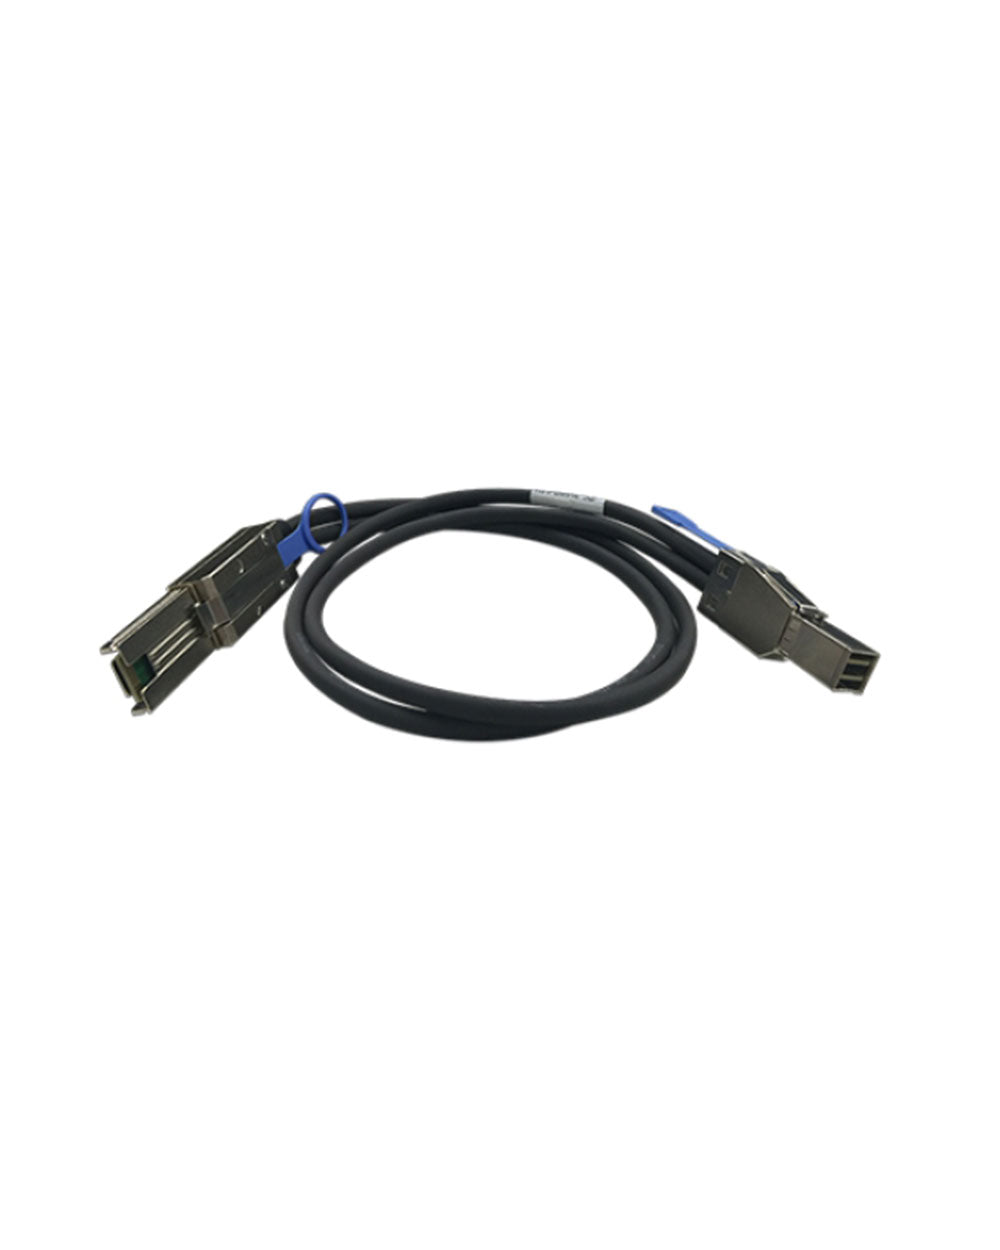 QNAP Mini SAS cable (SFF-8644 to SFF-8088), 1.0m